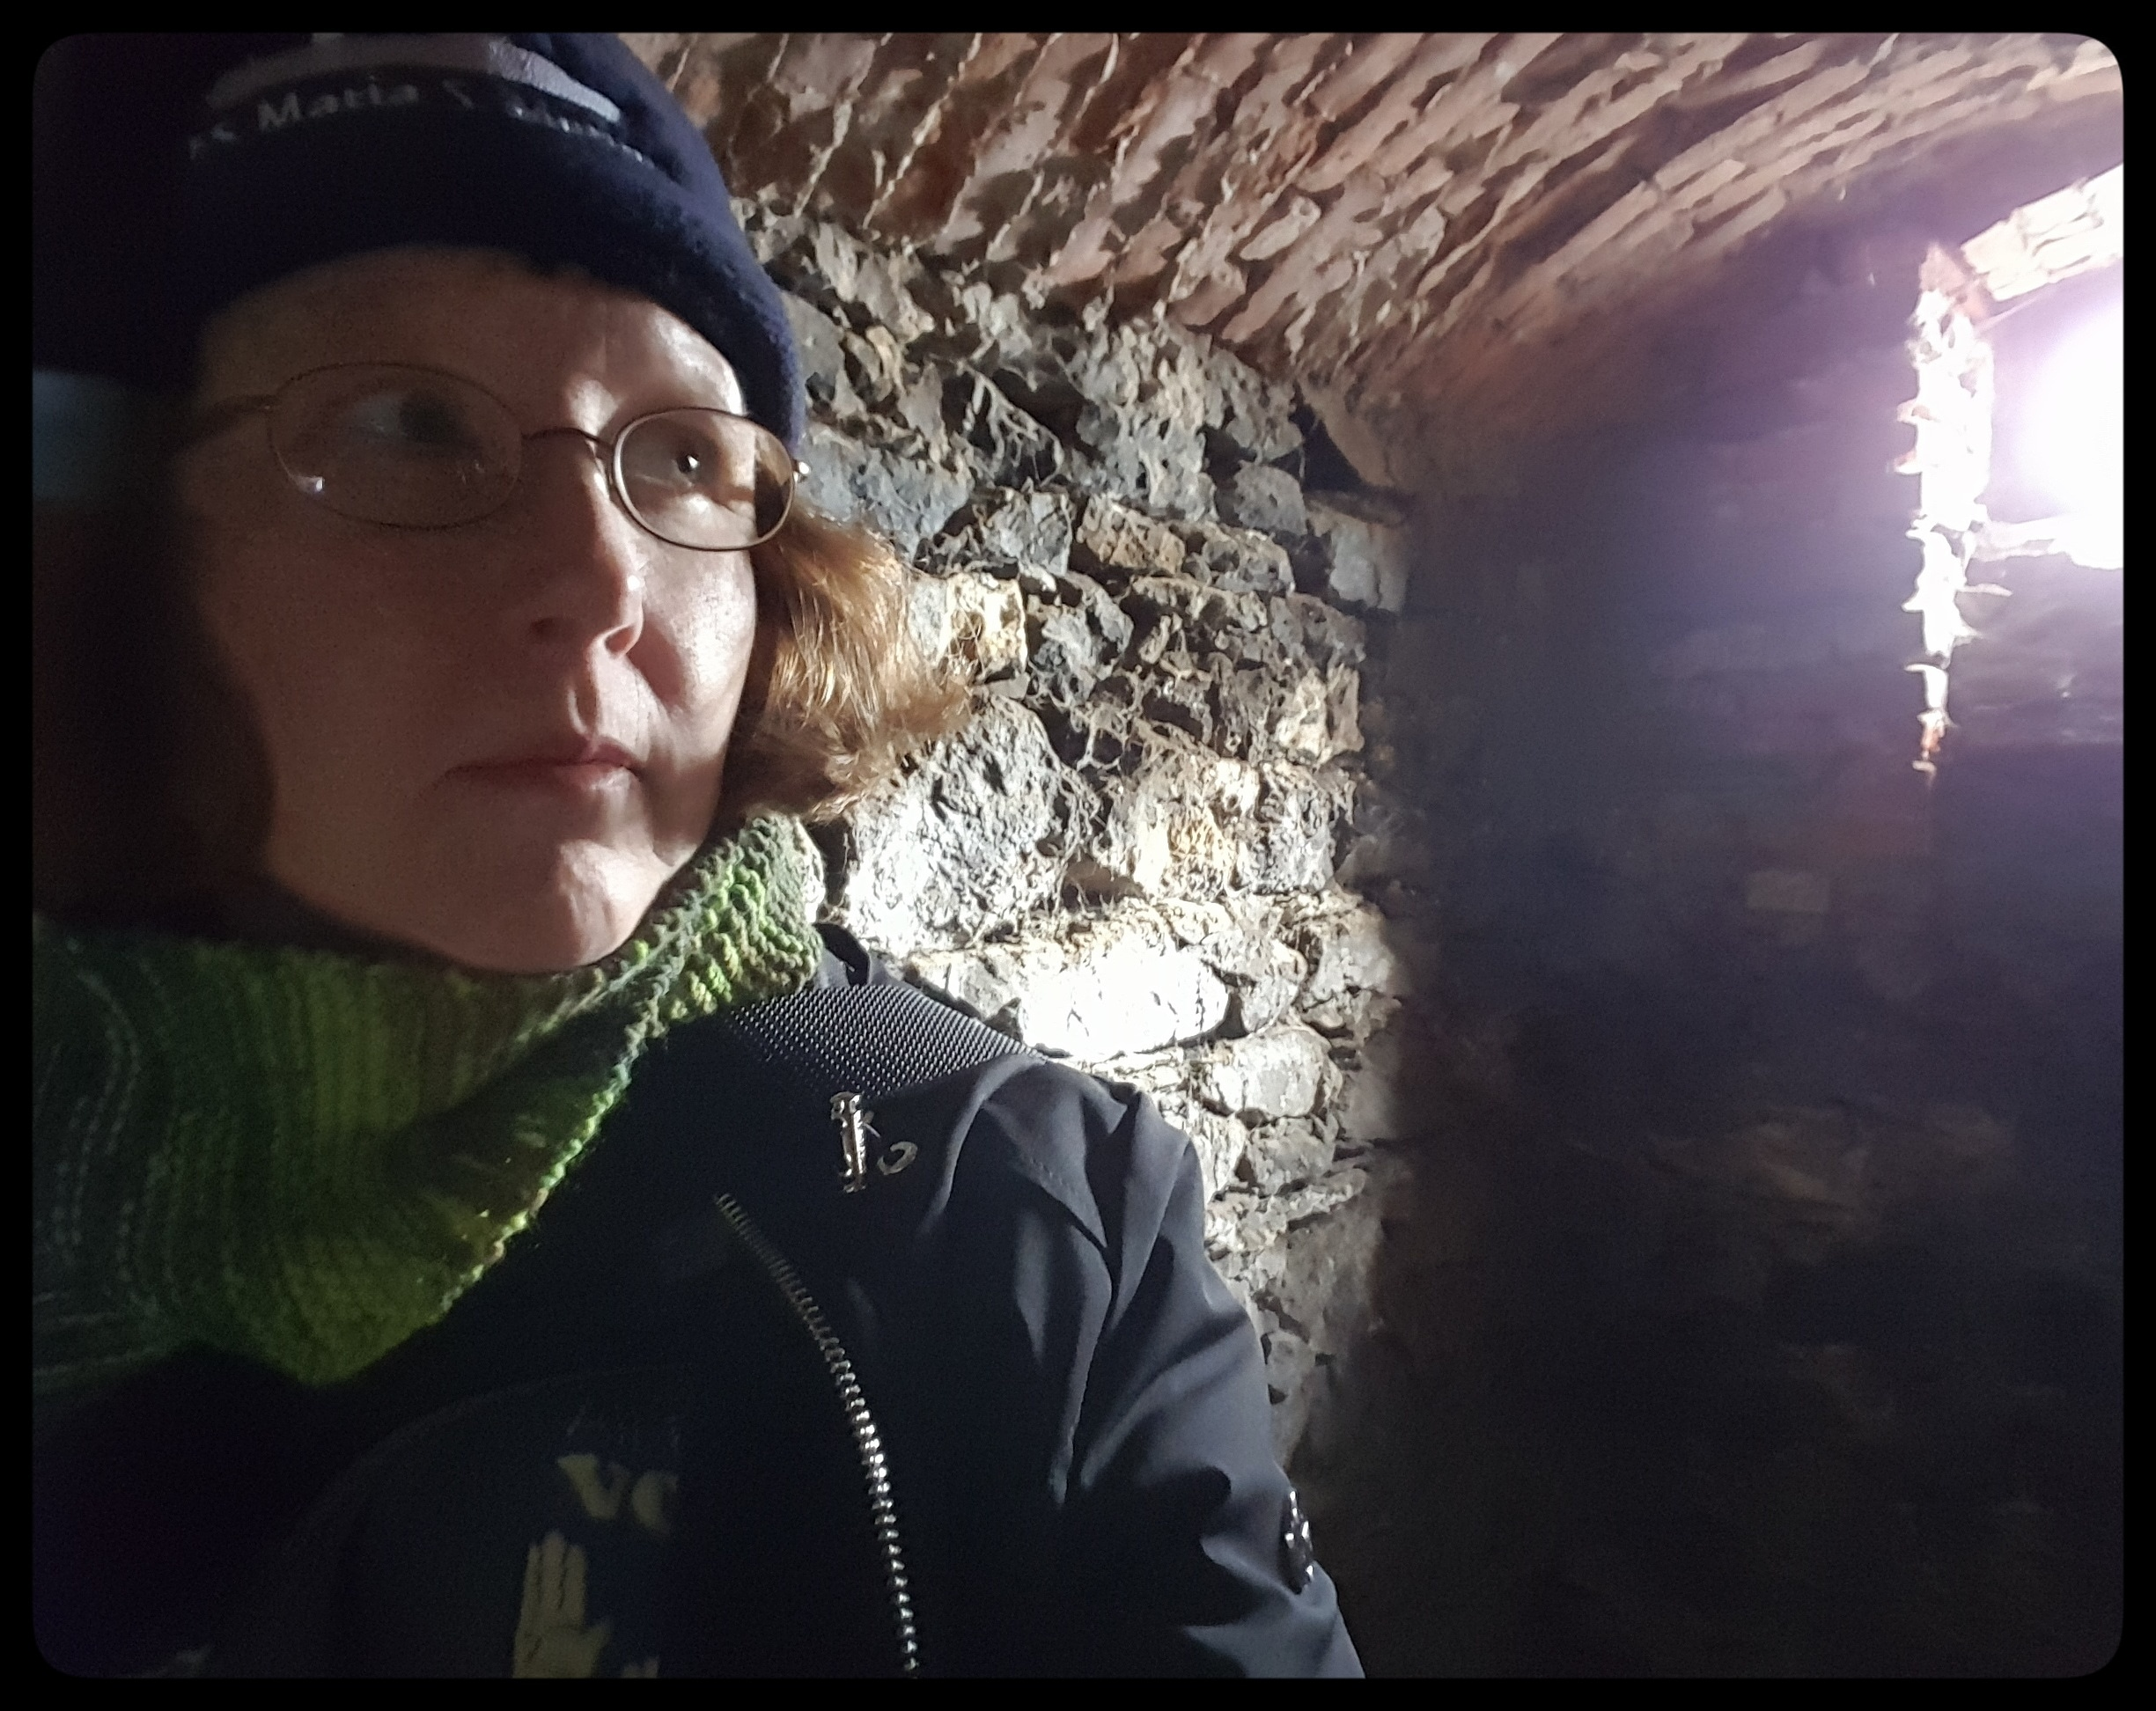 Selfie in a spooky cellar that would make an awesome speakeasy. Photo by Dragonfly Leathrum